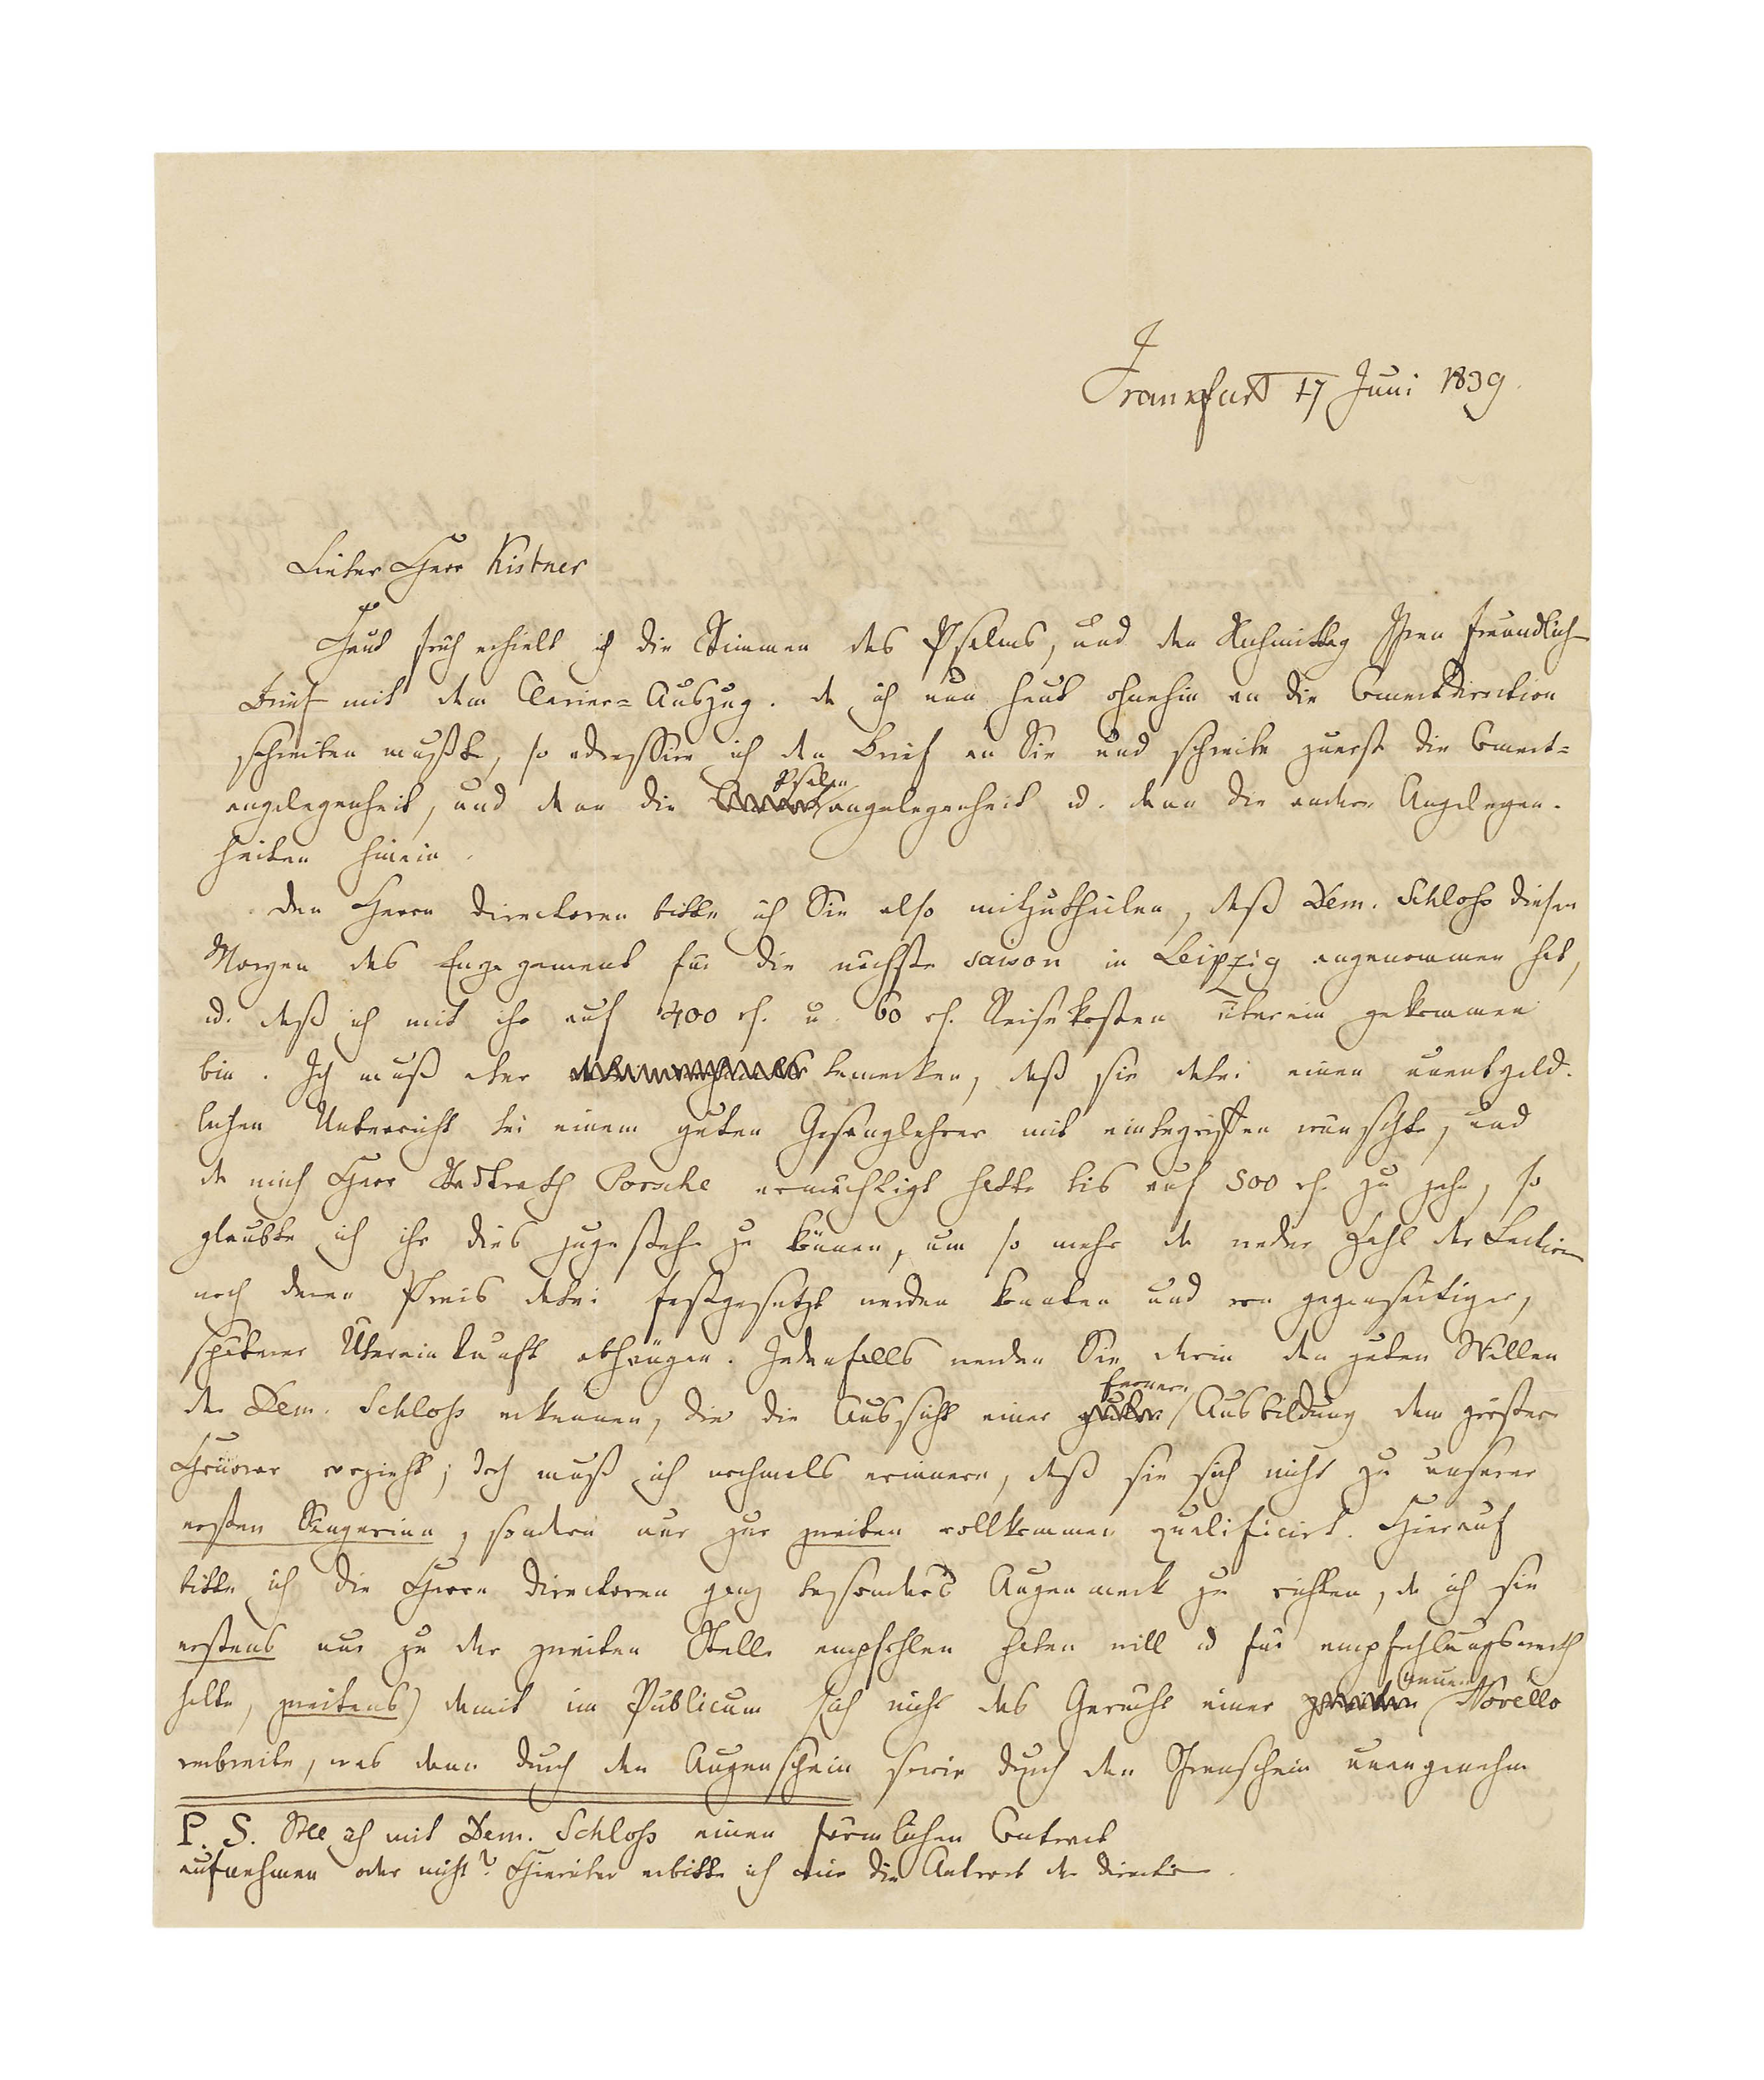 MENDELSSOHN BARTHOLDY, Felix (1809-1847). Autograph letter signed ('Felix Mendelssohn Bartholdy') to the management of the subscription concerts at Leipzig, c/o the publisher Friedrich Kistner, Frankfurt, 17 June 1839, 3 pages, 4to, integral address panel (minor browning, seal cut, guards), tipped onto card. Provenance: collection of Dr Fritz and Dita Callomon, and thence by gift.